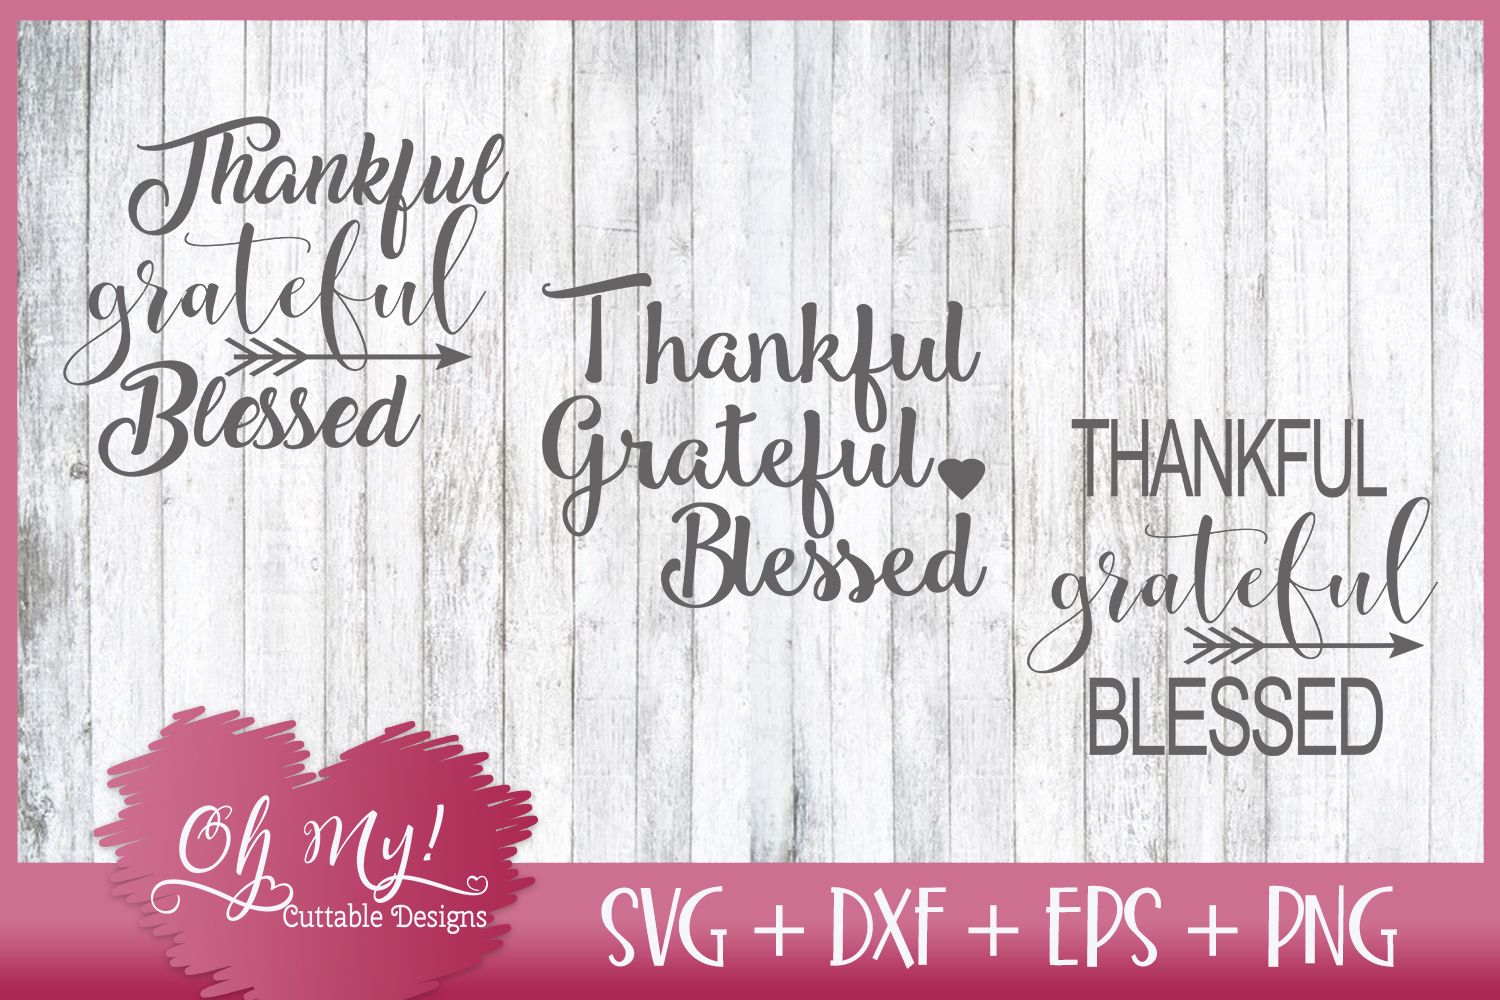 Thankful Grateful and Blessed - SVG DXF EPS PNG example image 1